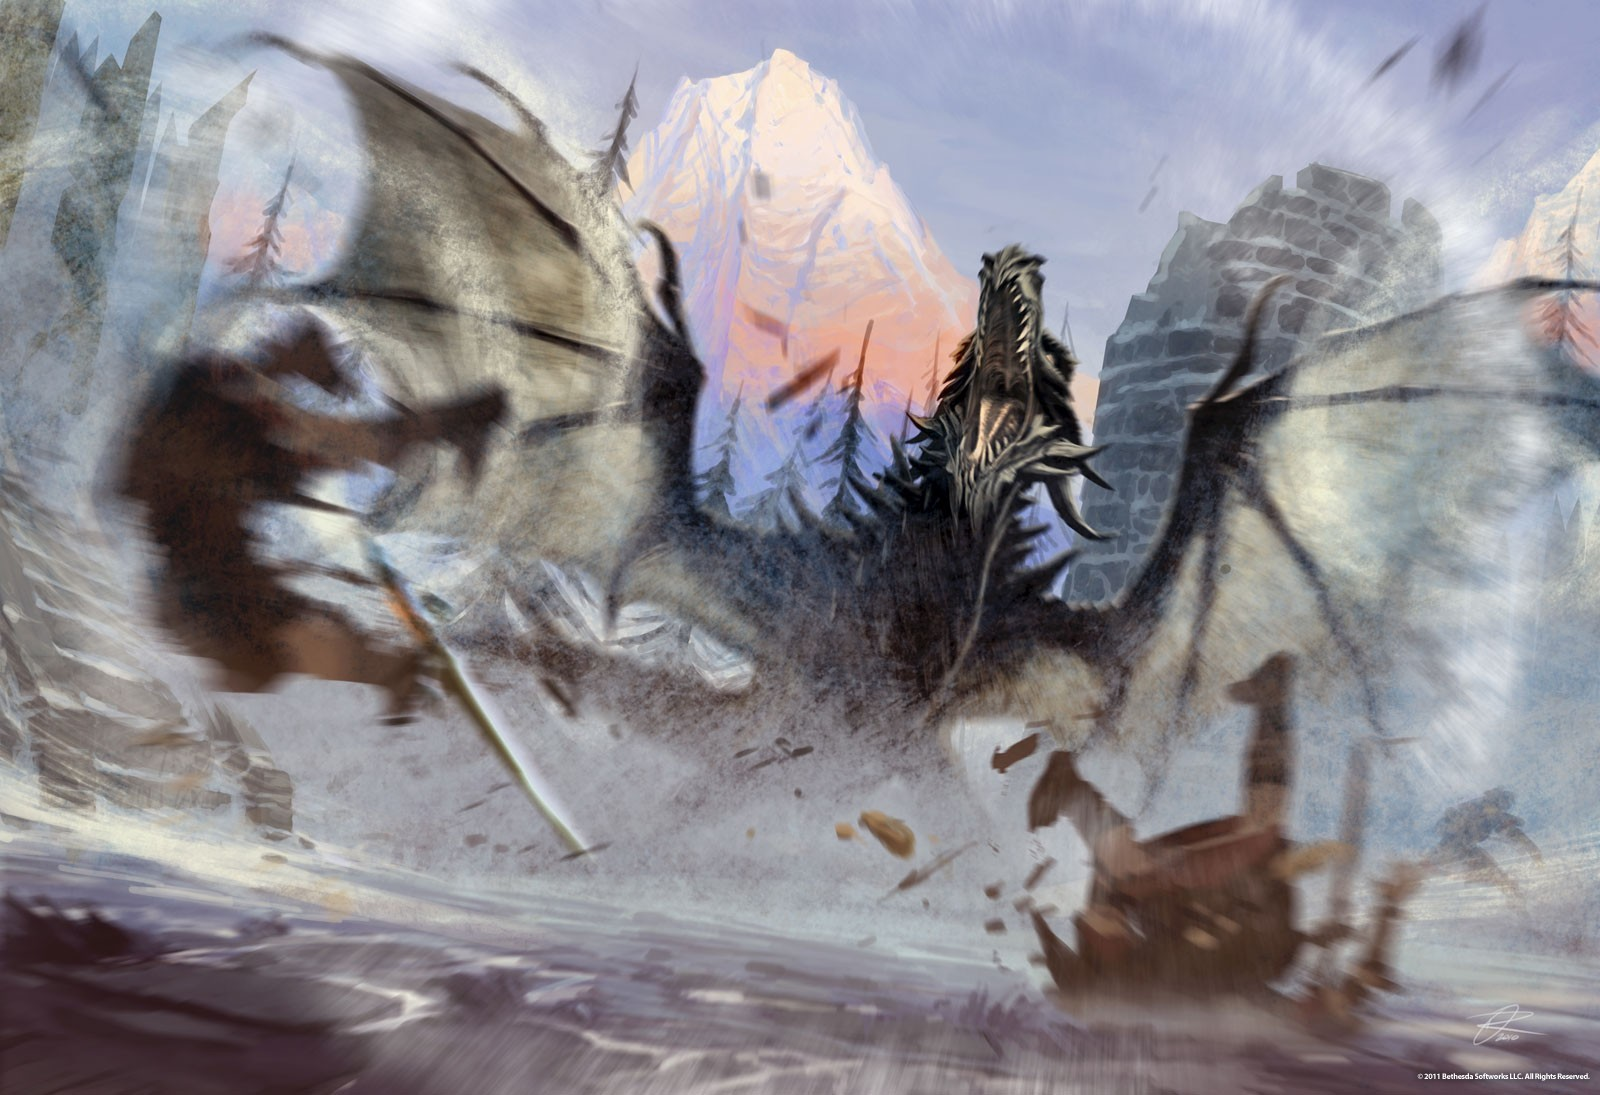 Dragons the elder scrolls v skyrim artwork HD Wallpaper